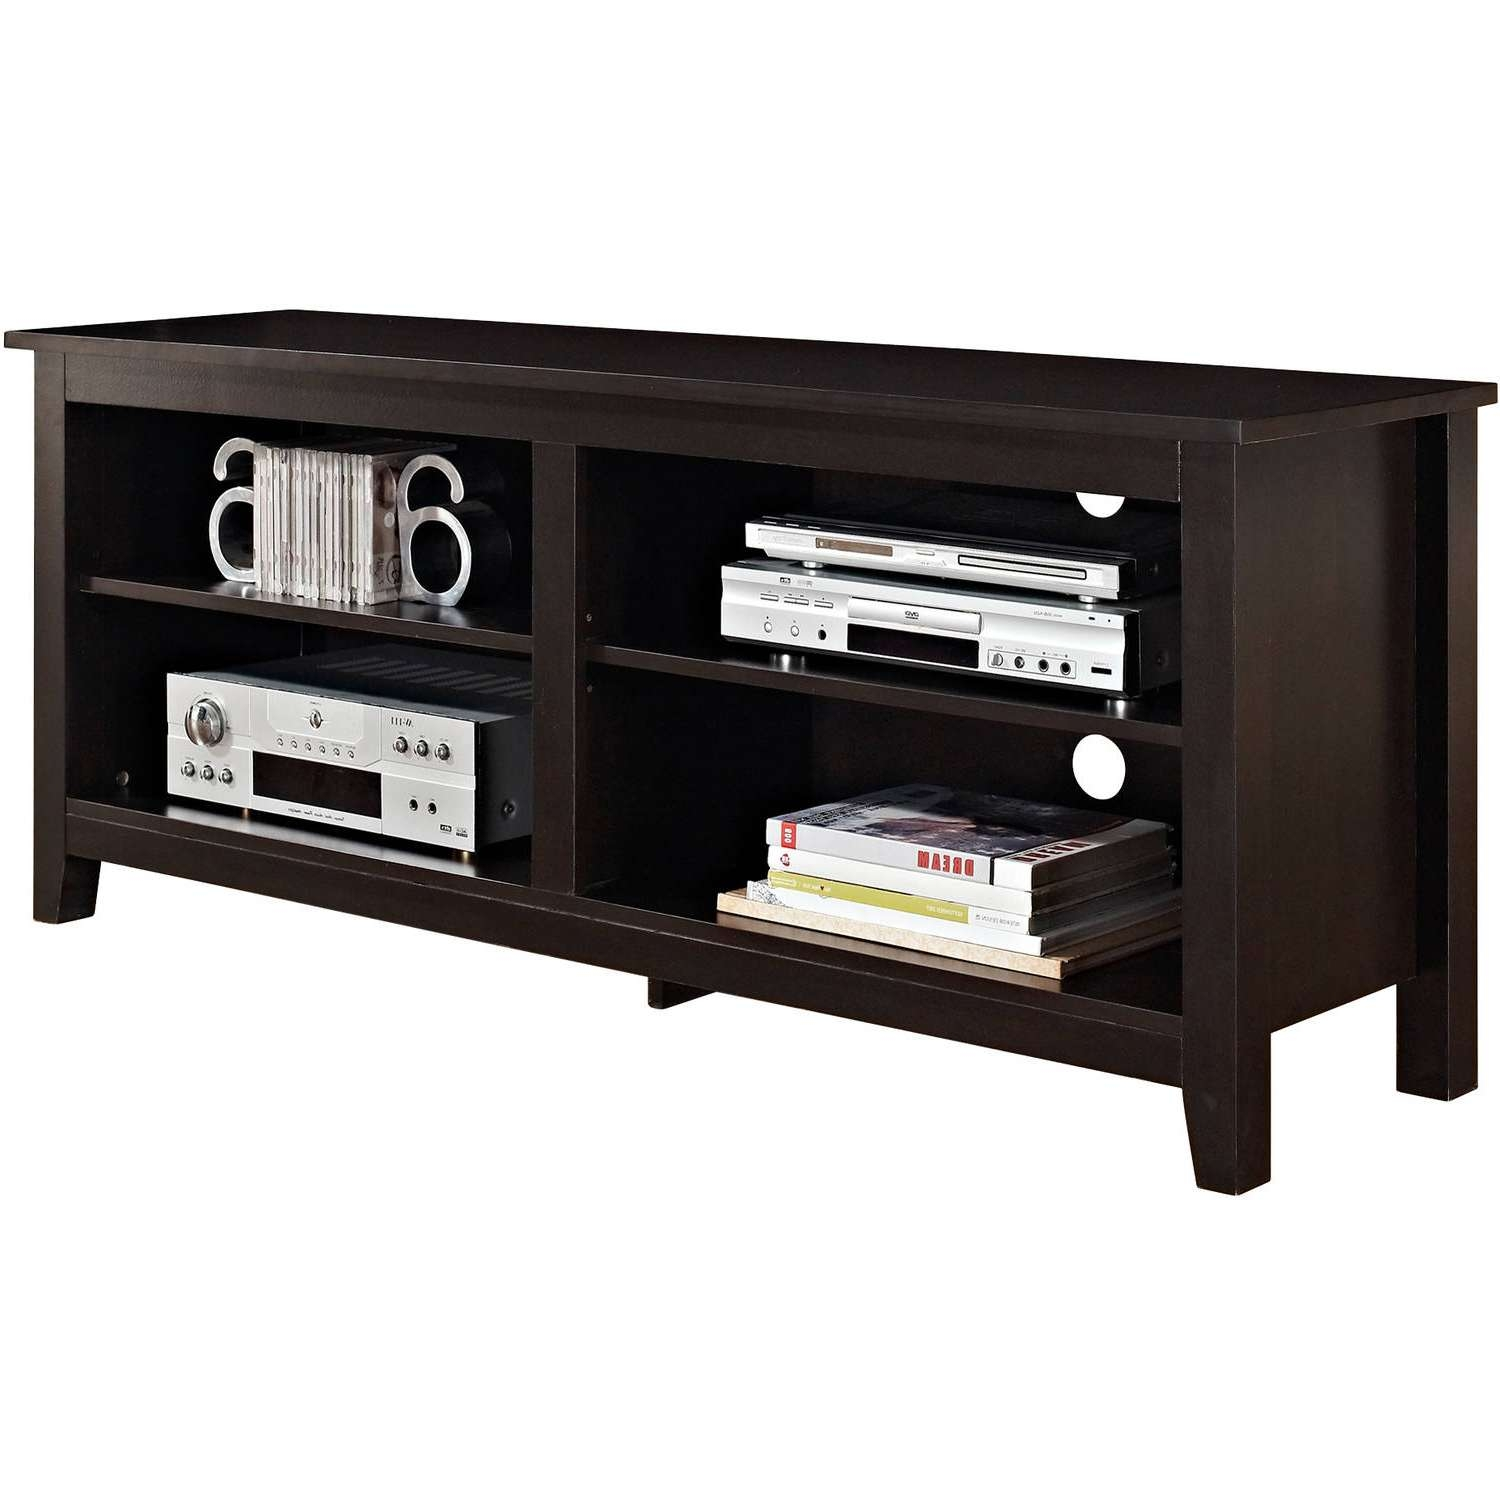 """Wood Tv Stand For Tvs Up To 60"""", Espresso – Walmart Regarding Wooden Tv Stands (View 13 of 15)"""